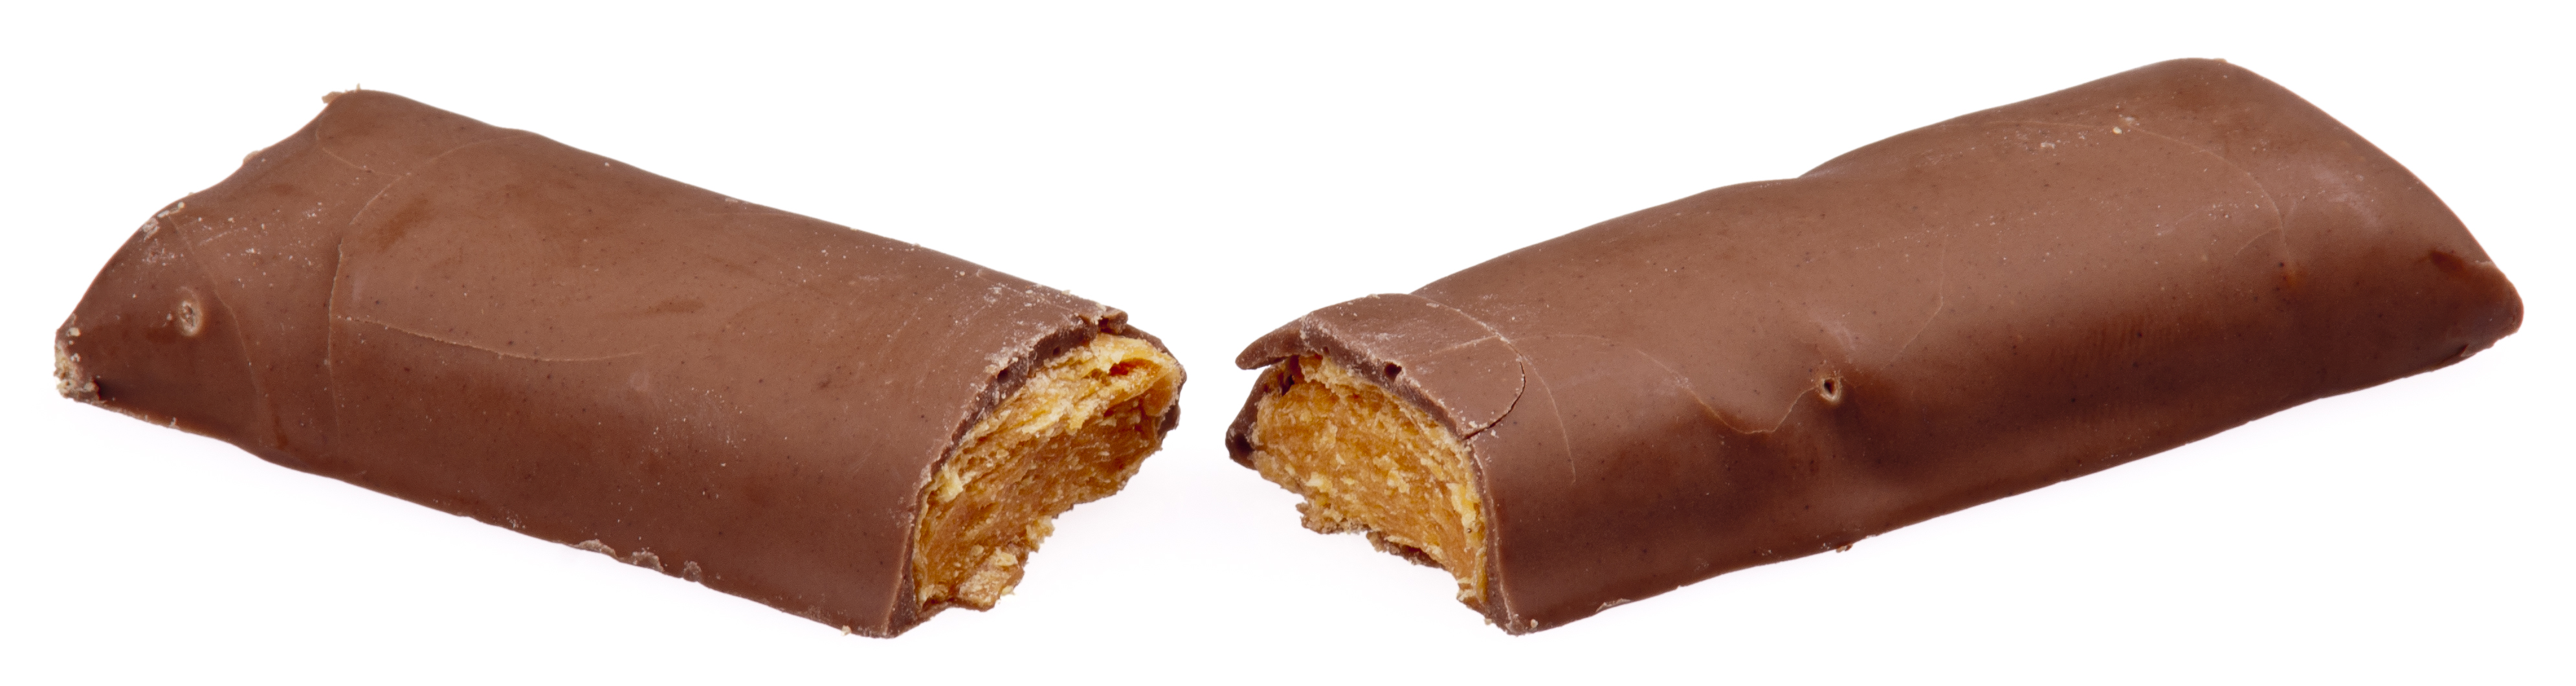 Chocolate Finger And M M Cake